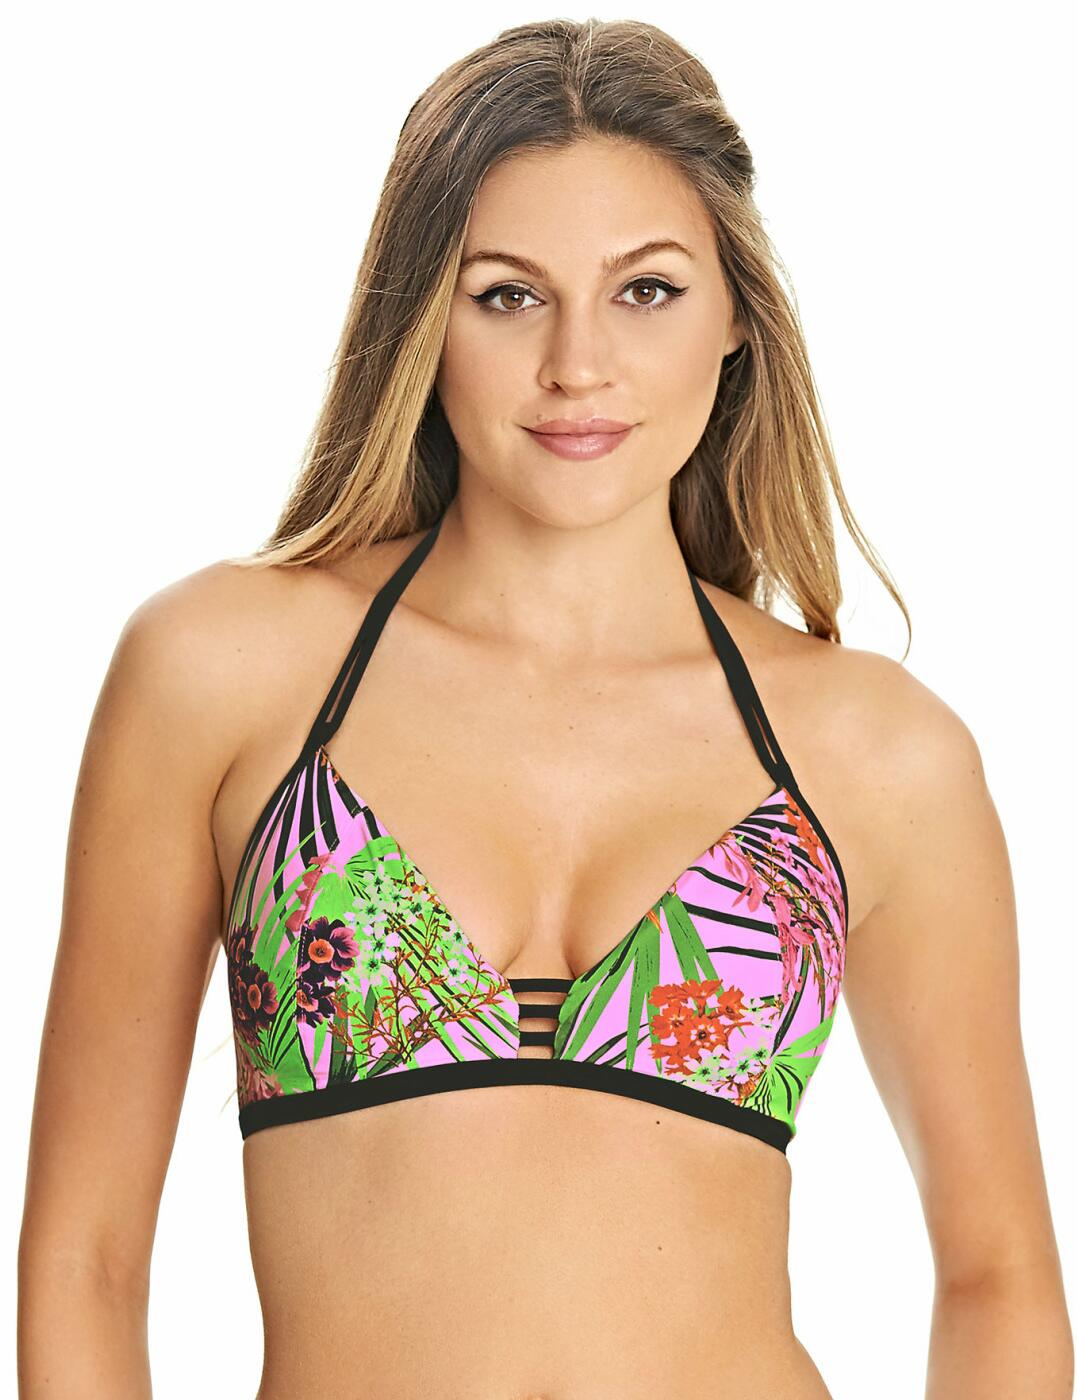 4031 Freya Lost in Paradise Soft Triangle Bikini Top Pink - 4031 Pink